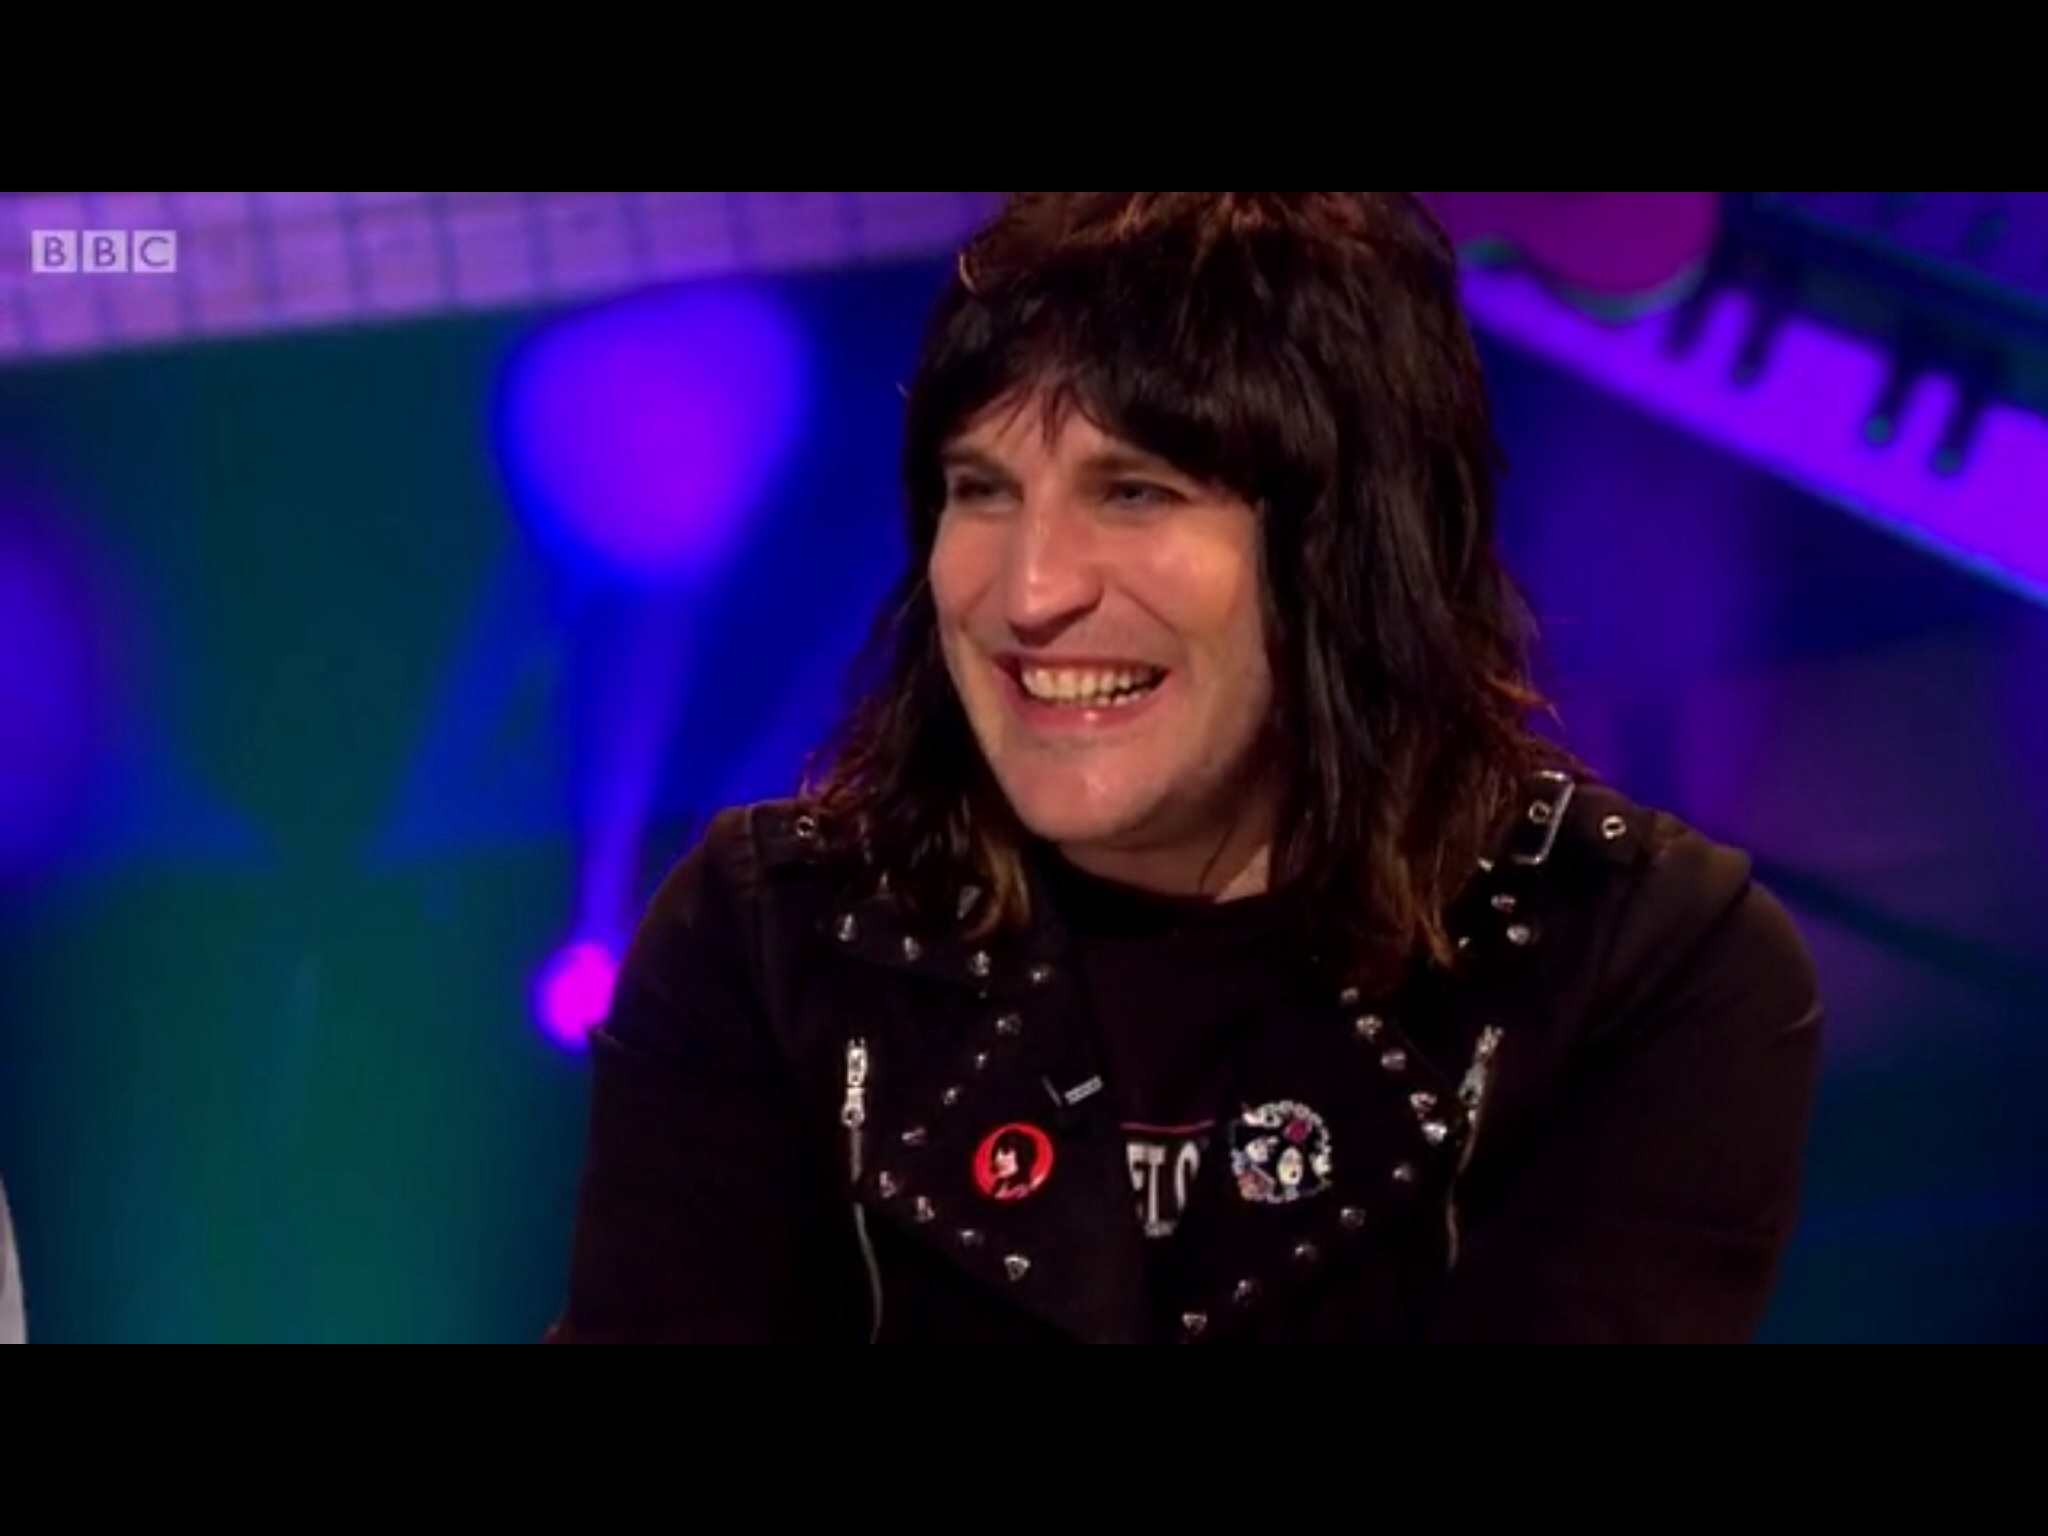 fielding dating Yvette fielding ranks #132722 among the most girl-crushed-upon celebrity women is she dating or bisexual why people had a crush on her hot bikini body and hairstyle pics on newest tv shows movies.